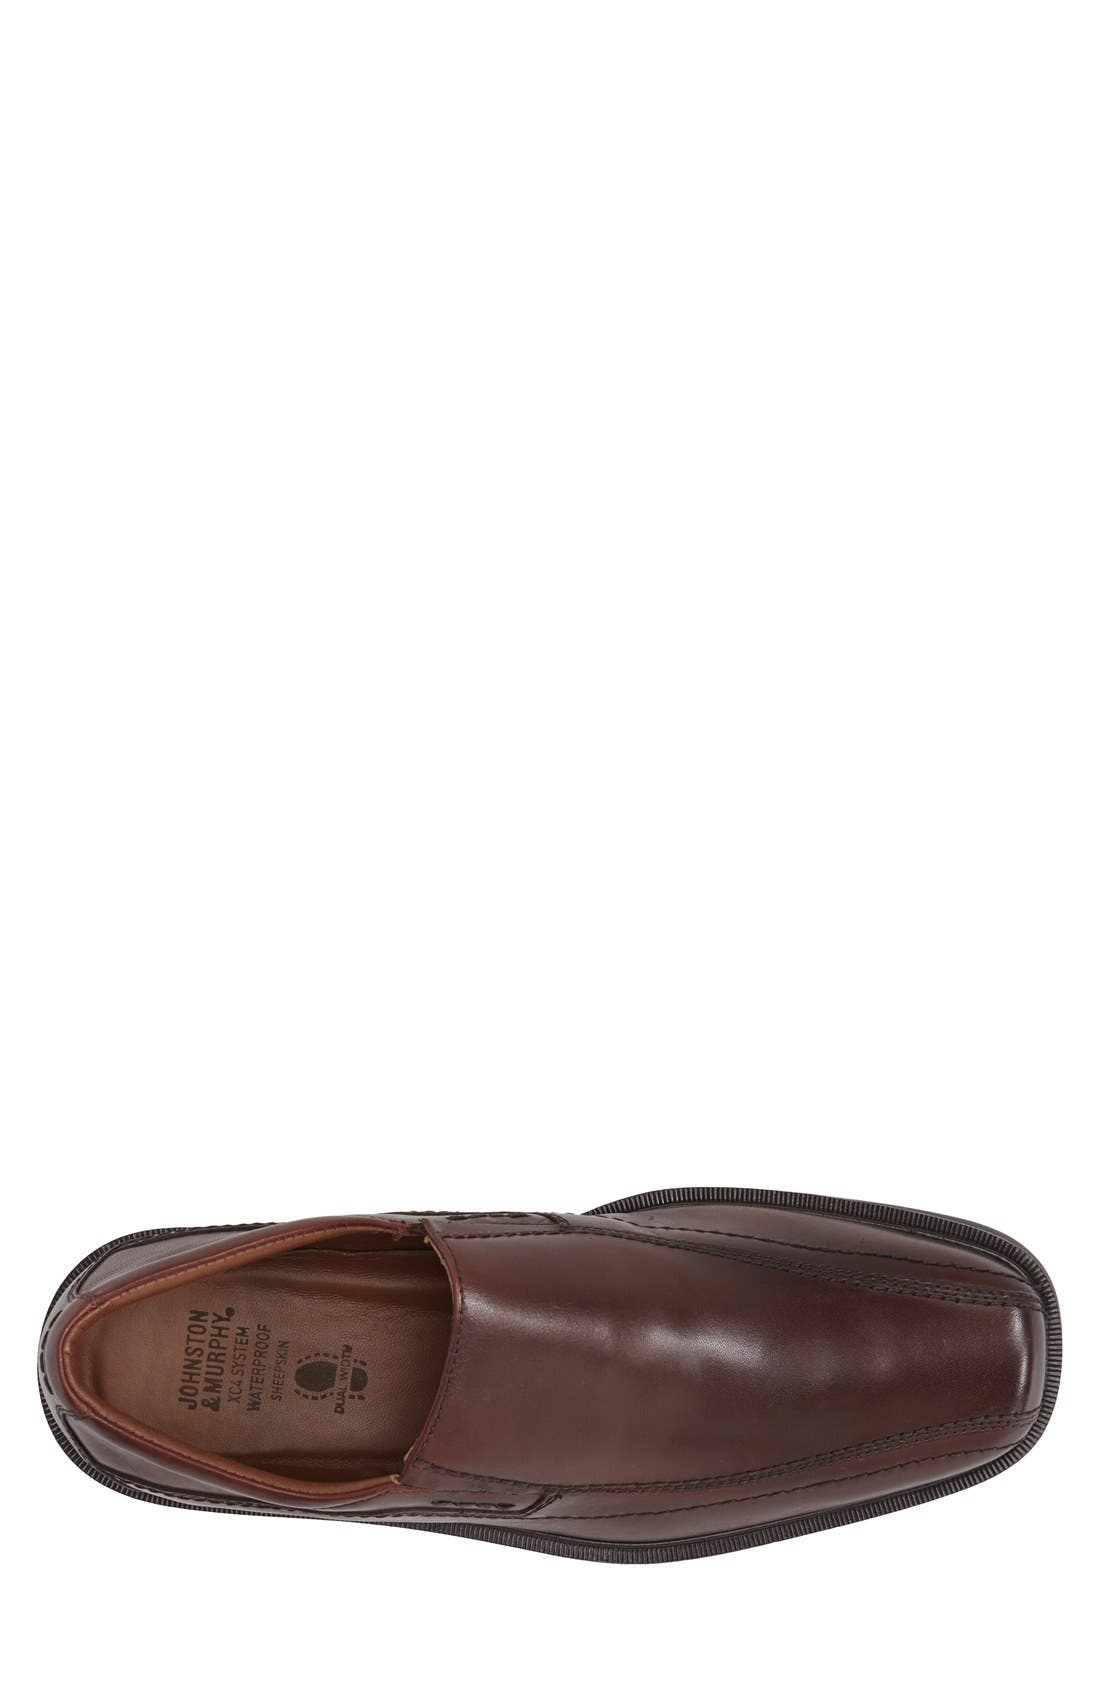 Alternate Image 3  - Johnston & Murphy 'Penn' Venetian Loafer (Men)